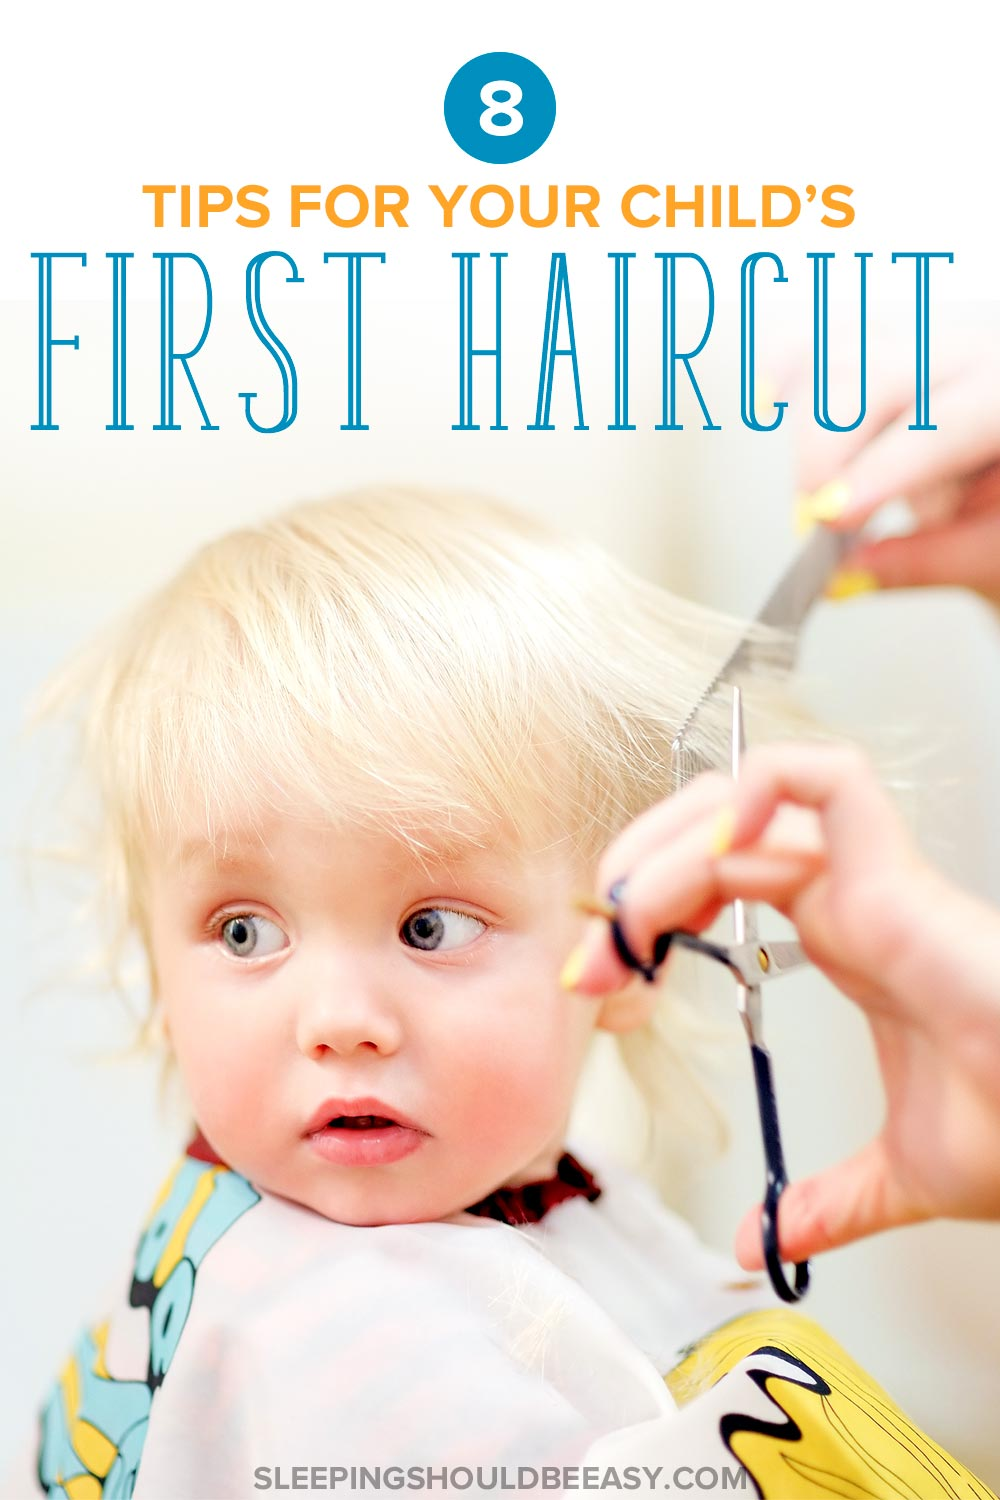 Childs First Haircut At A Salon 8 Tips For Parents To Consider